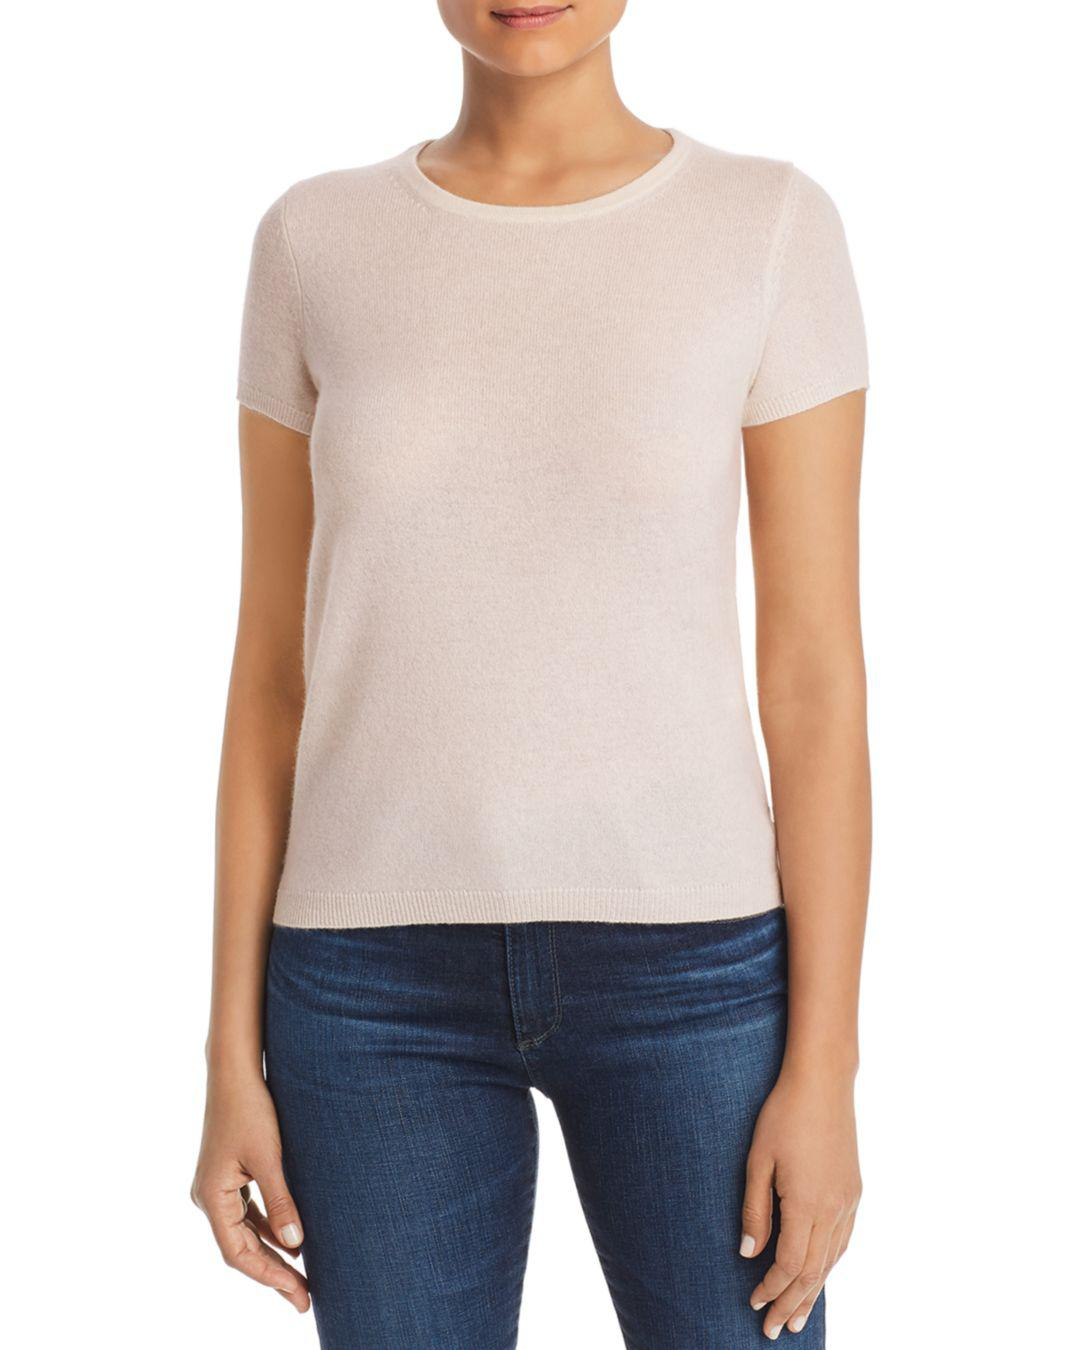 C By Bloomingdale S Short Sleeve Cashmere Sweater in Pink - Lyst c830056a0